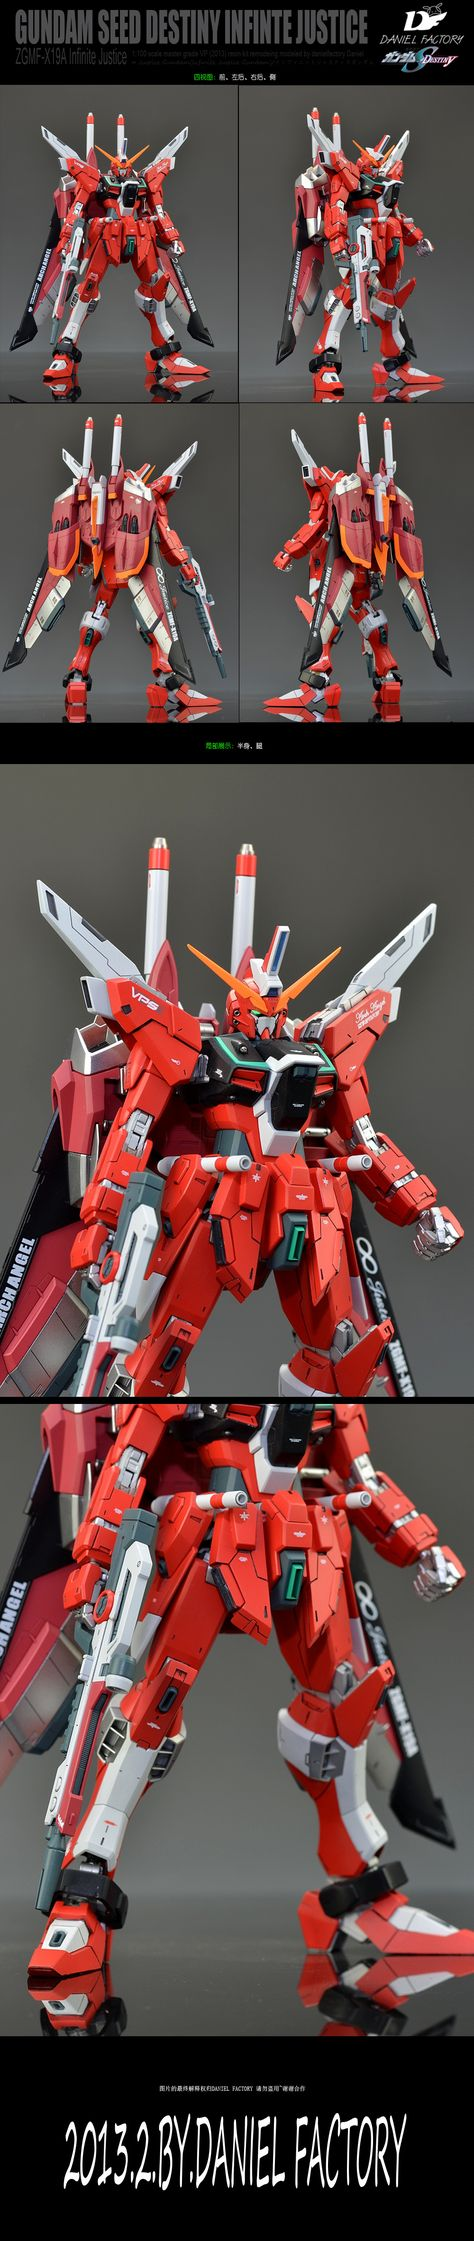 Zgmf X19a Infinite Justice Gundam 1 100 Mg Vp 2013 Resin Kit Remodeling By Daniel Factory Gundam Gundam Model Gundam Toys